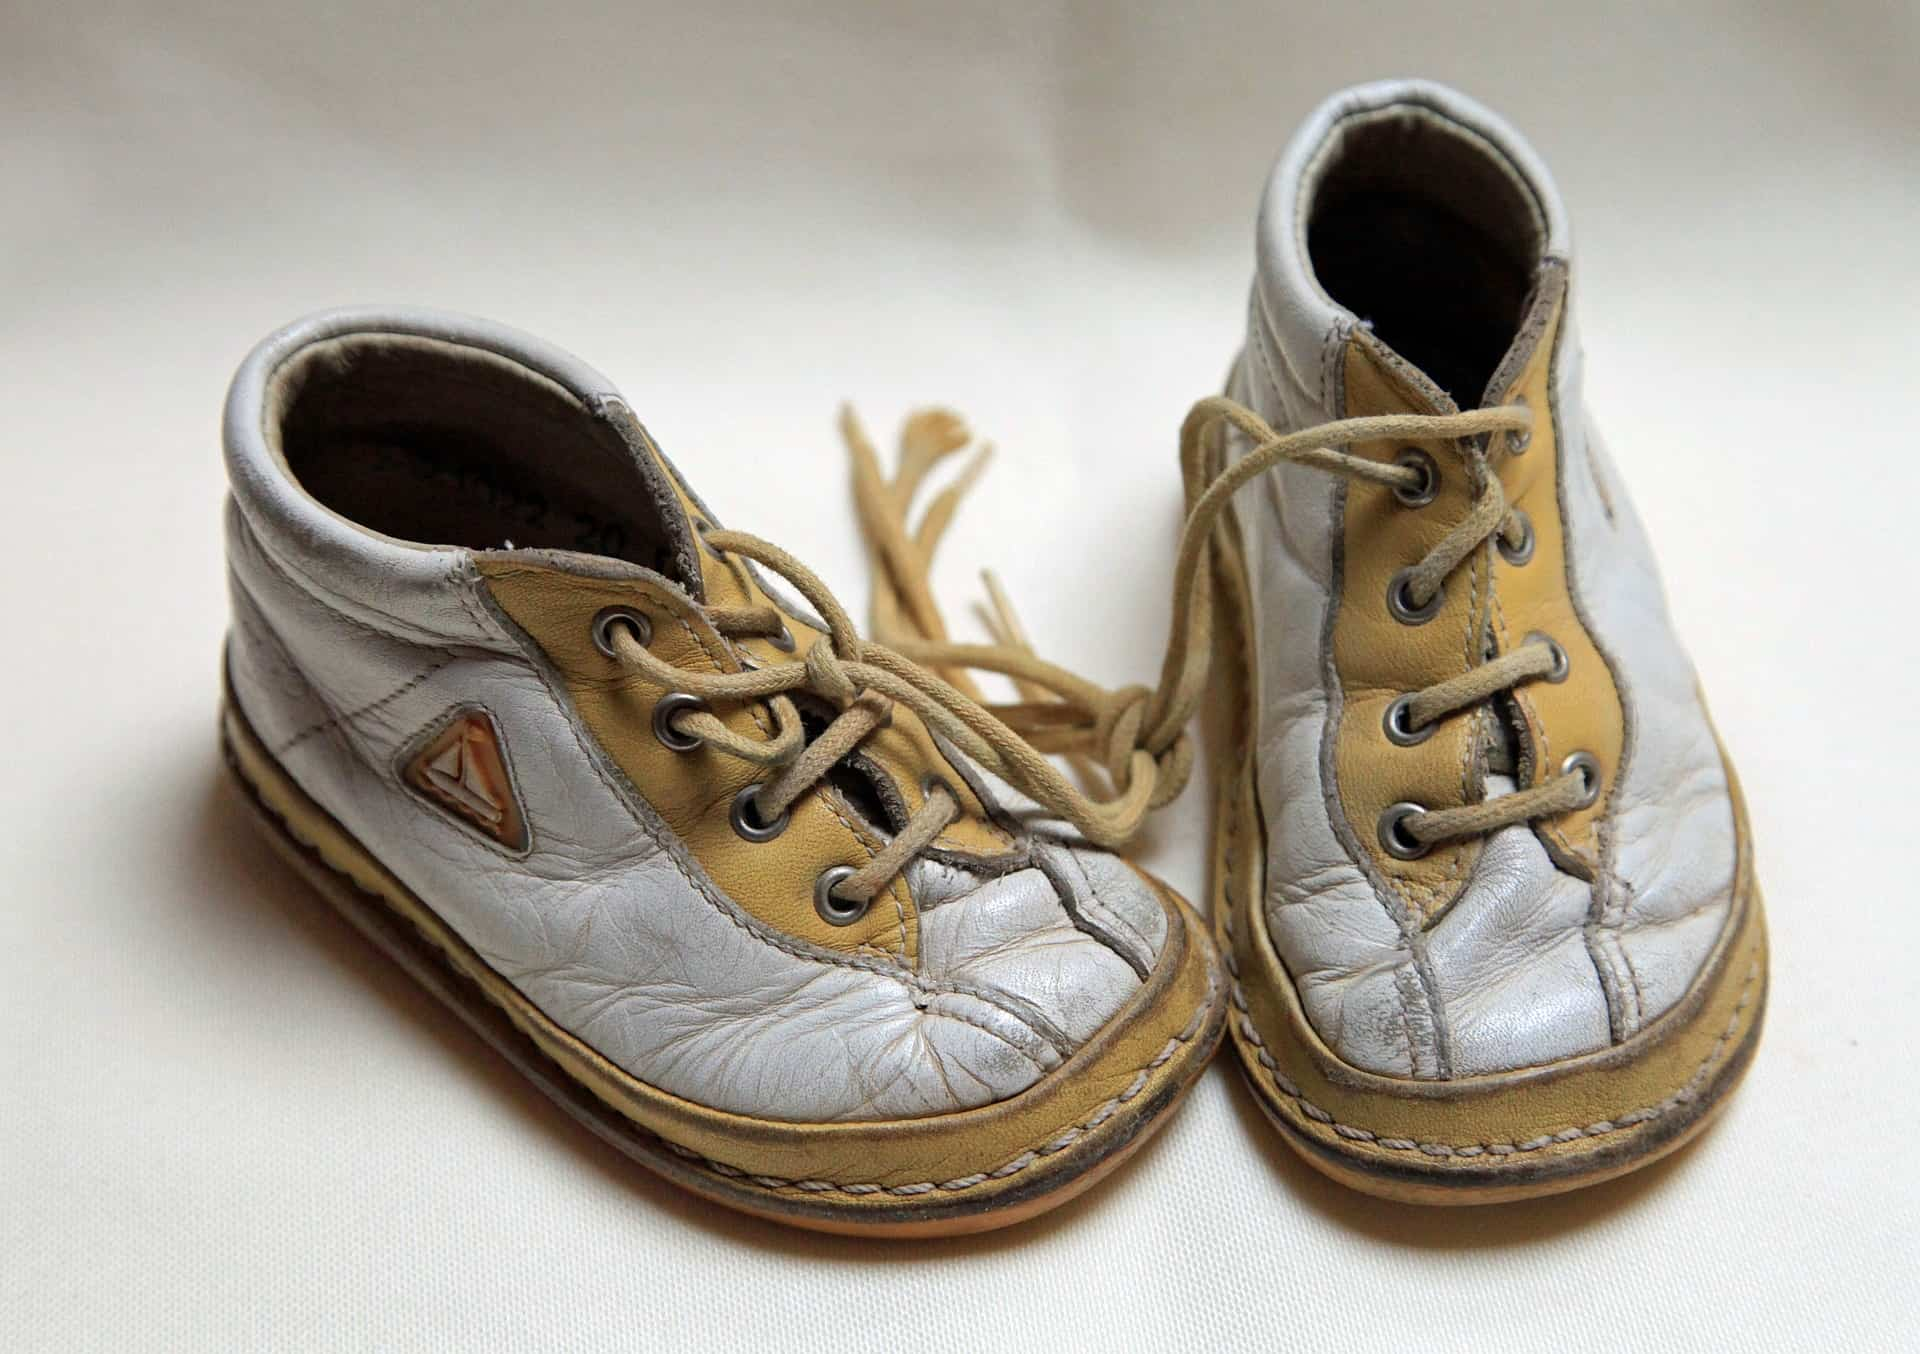 childrens shoes are always in demand on ebay